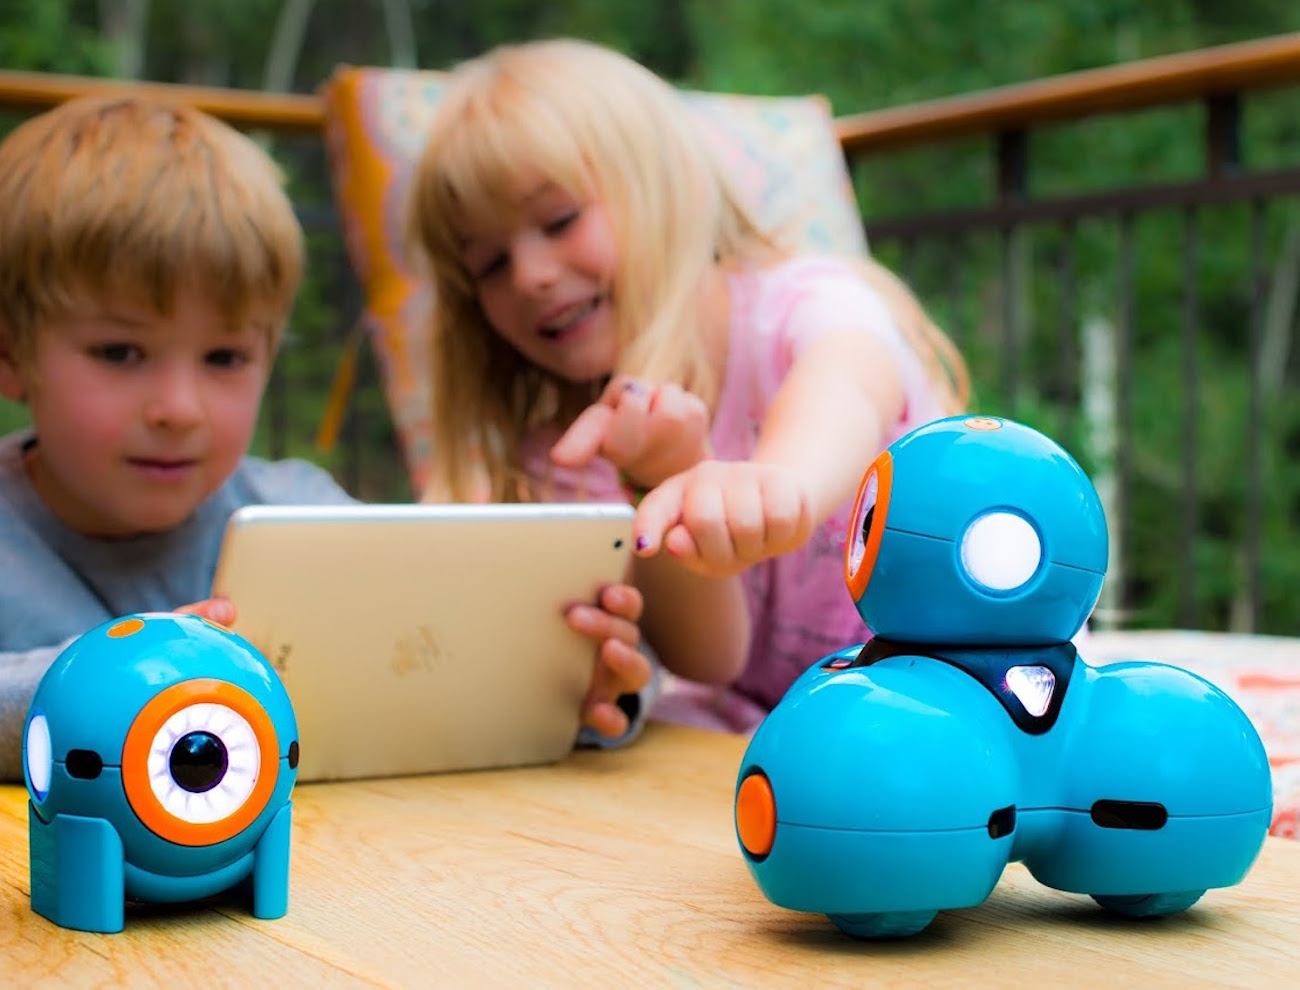 Dot – The Code-Teaching Robot by Wonder Workshop